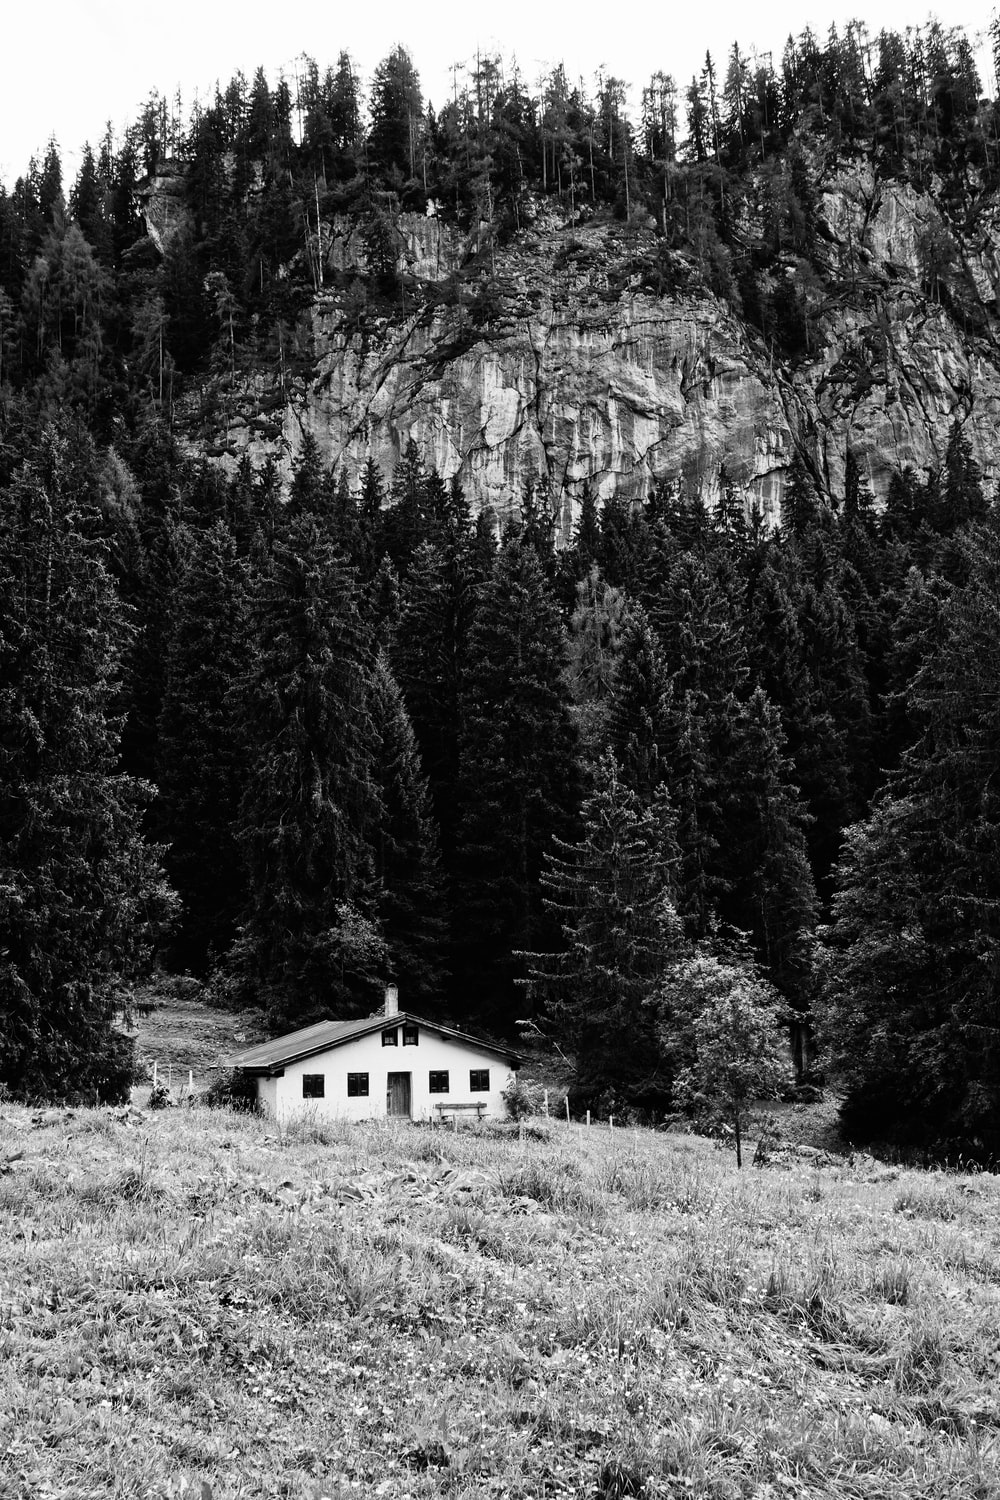 grayscale photo of house surrounded by trees